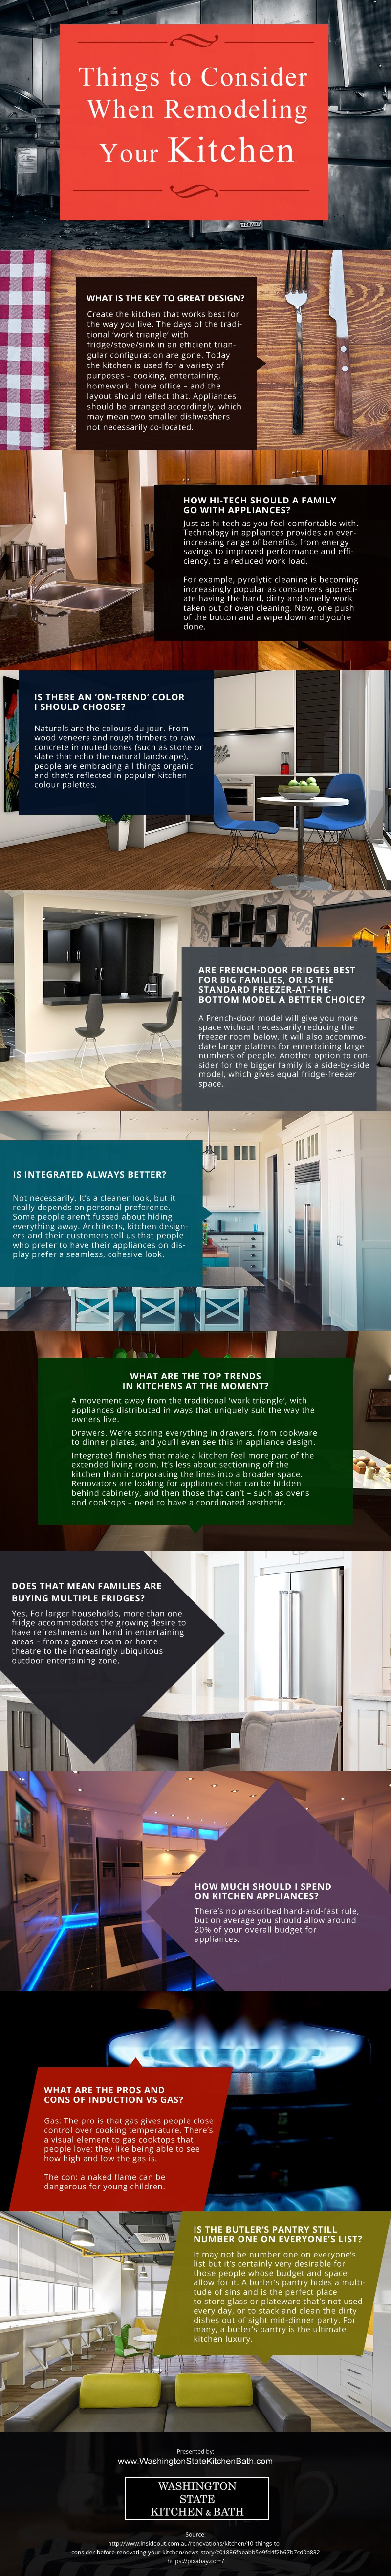 Things-to-Consider-When-Remodeling-Your-Kitchen Infographic